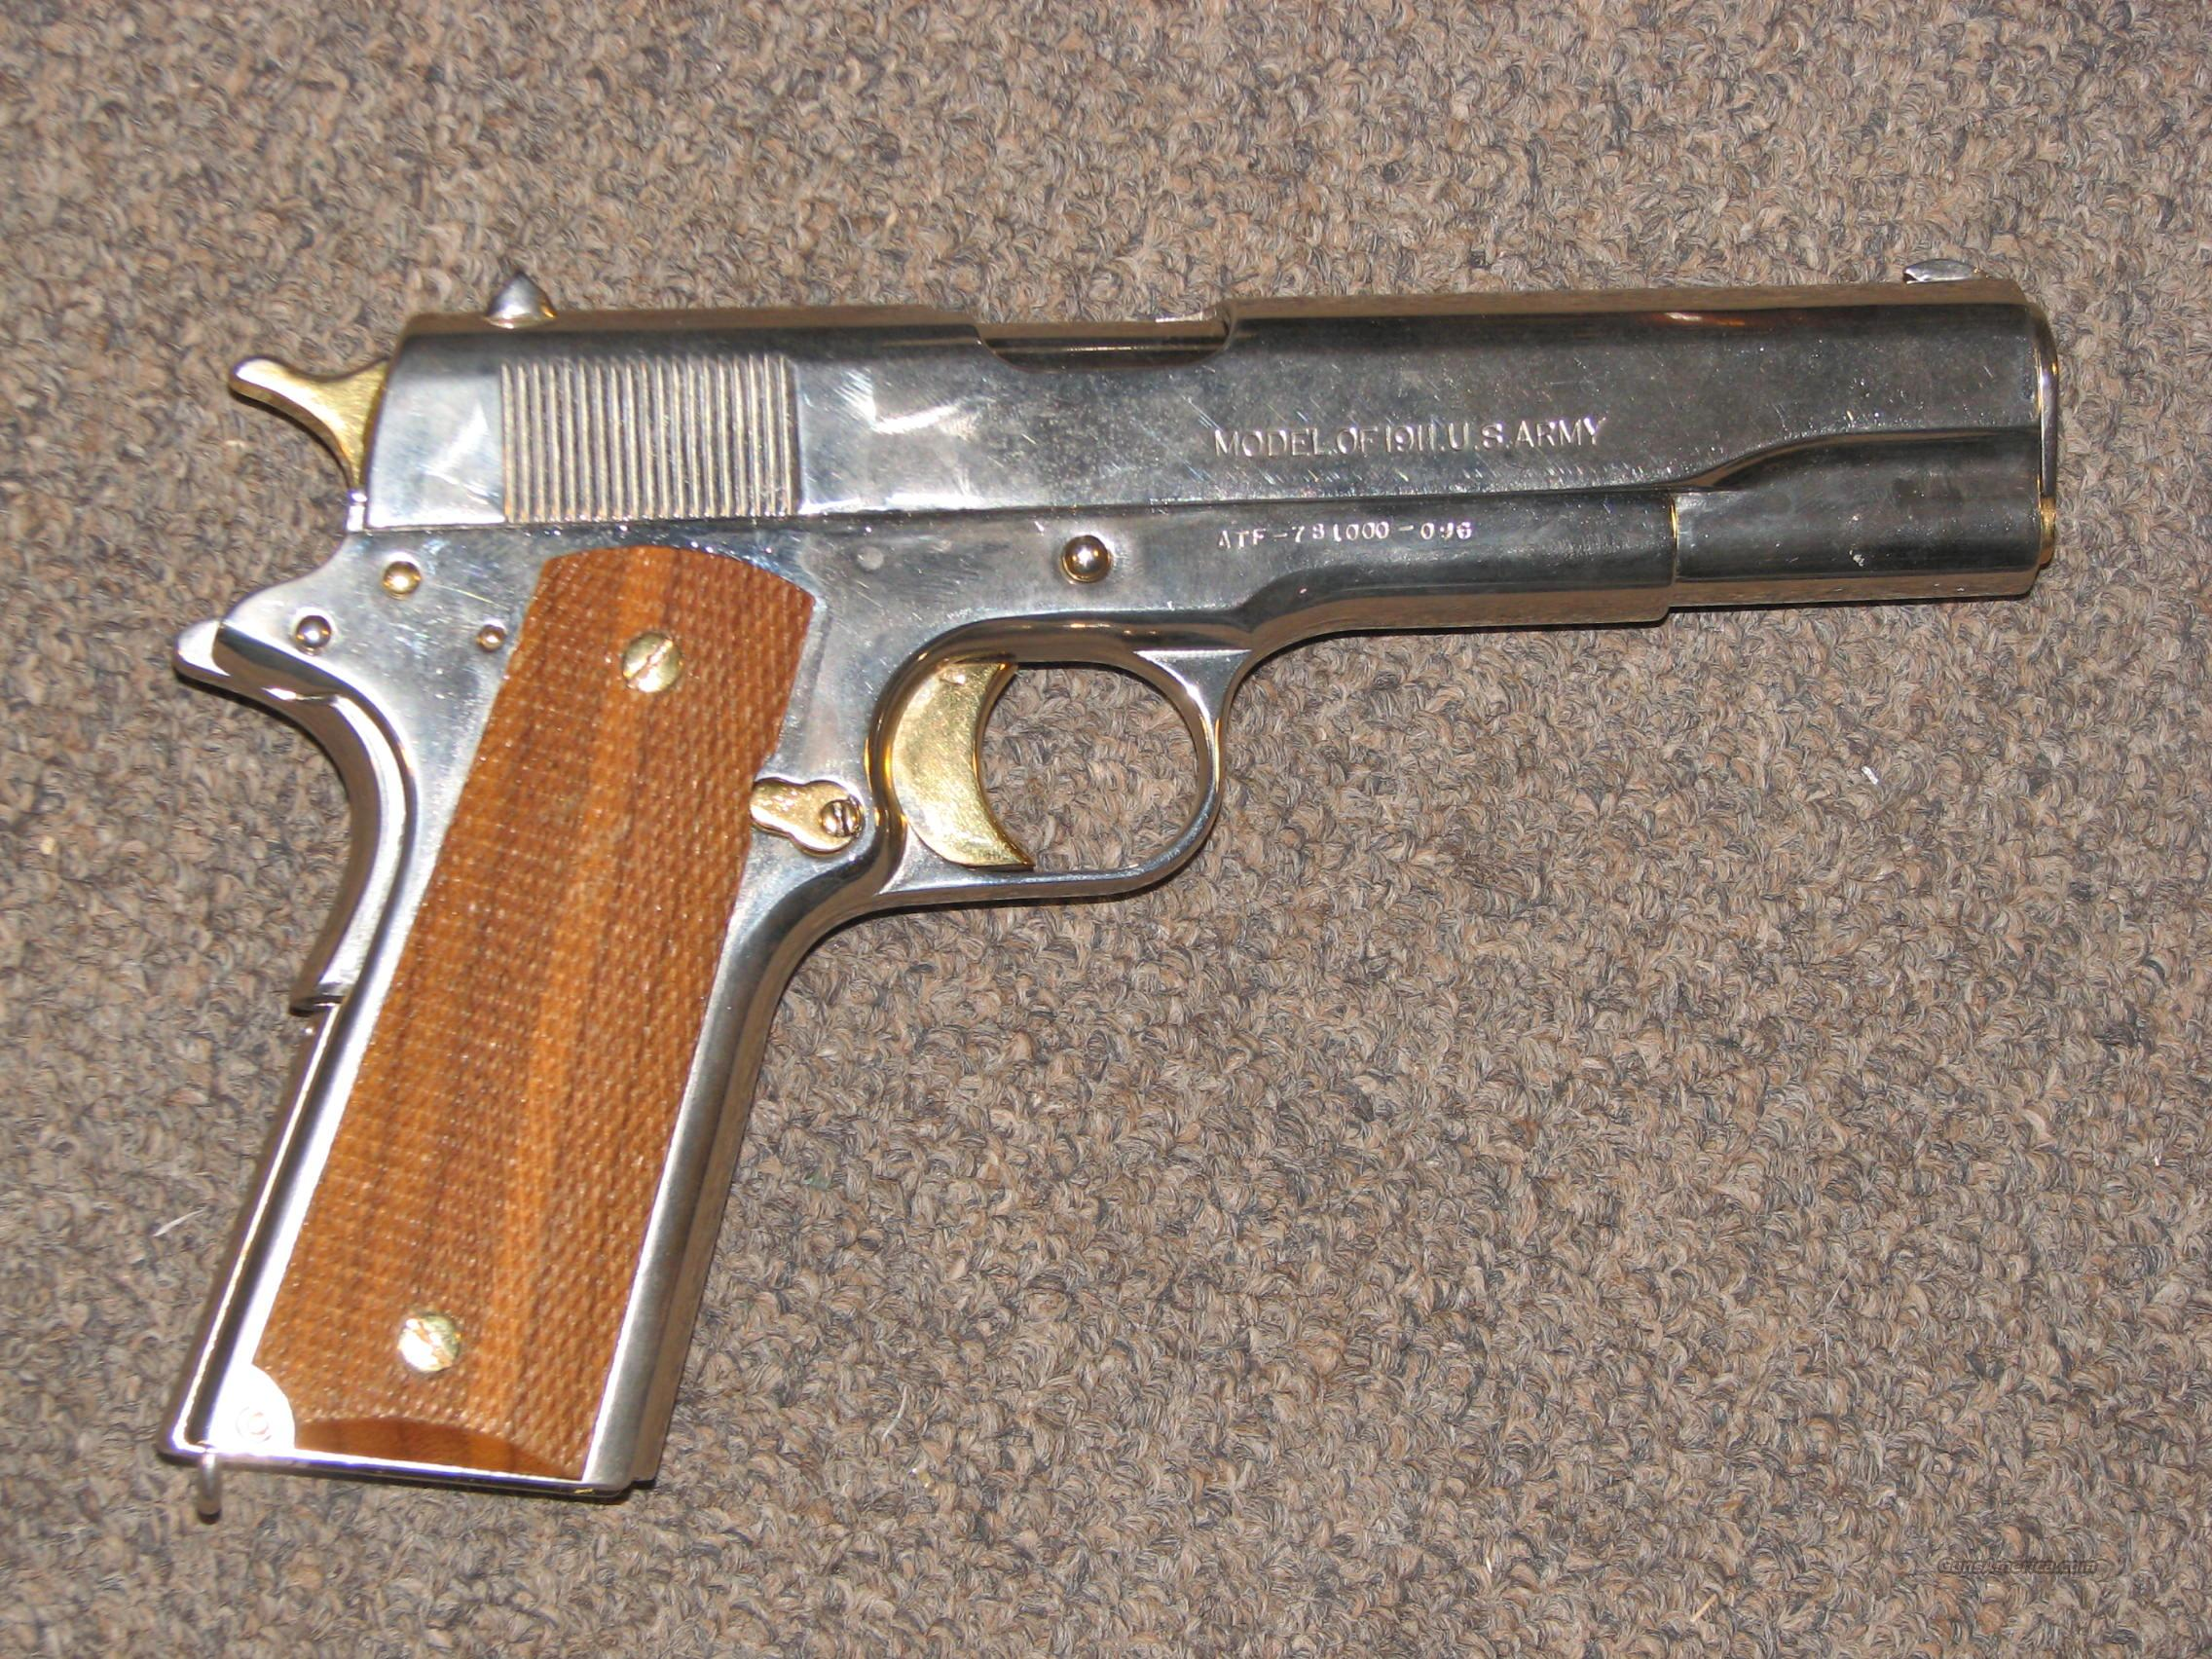 COLT 1911 US ARMY  45 ACP - Nickel/Gold Plated